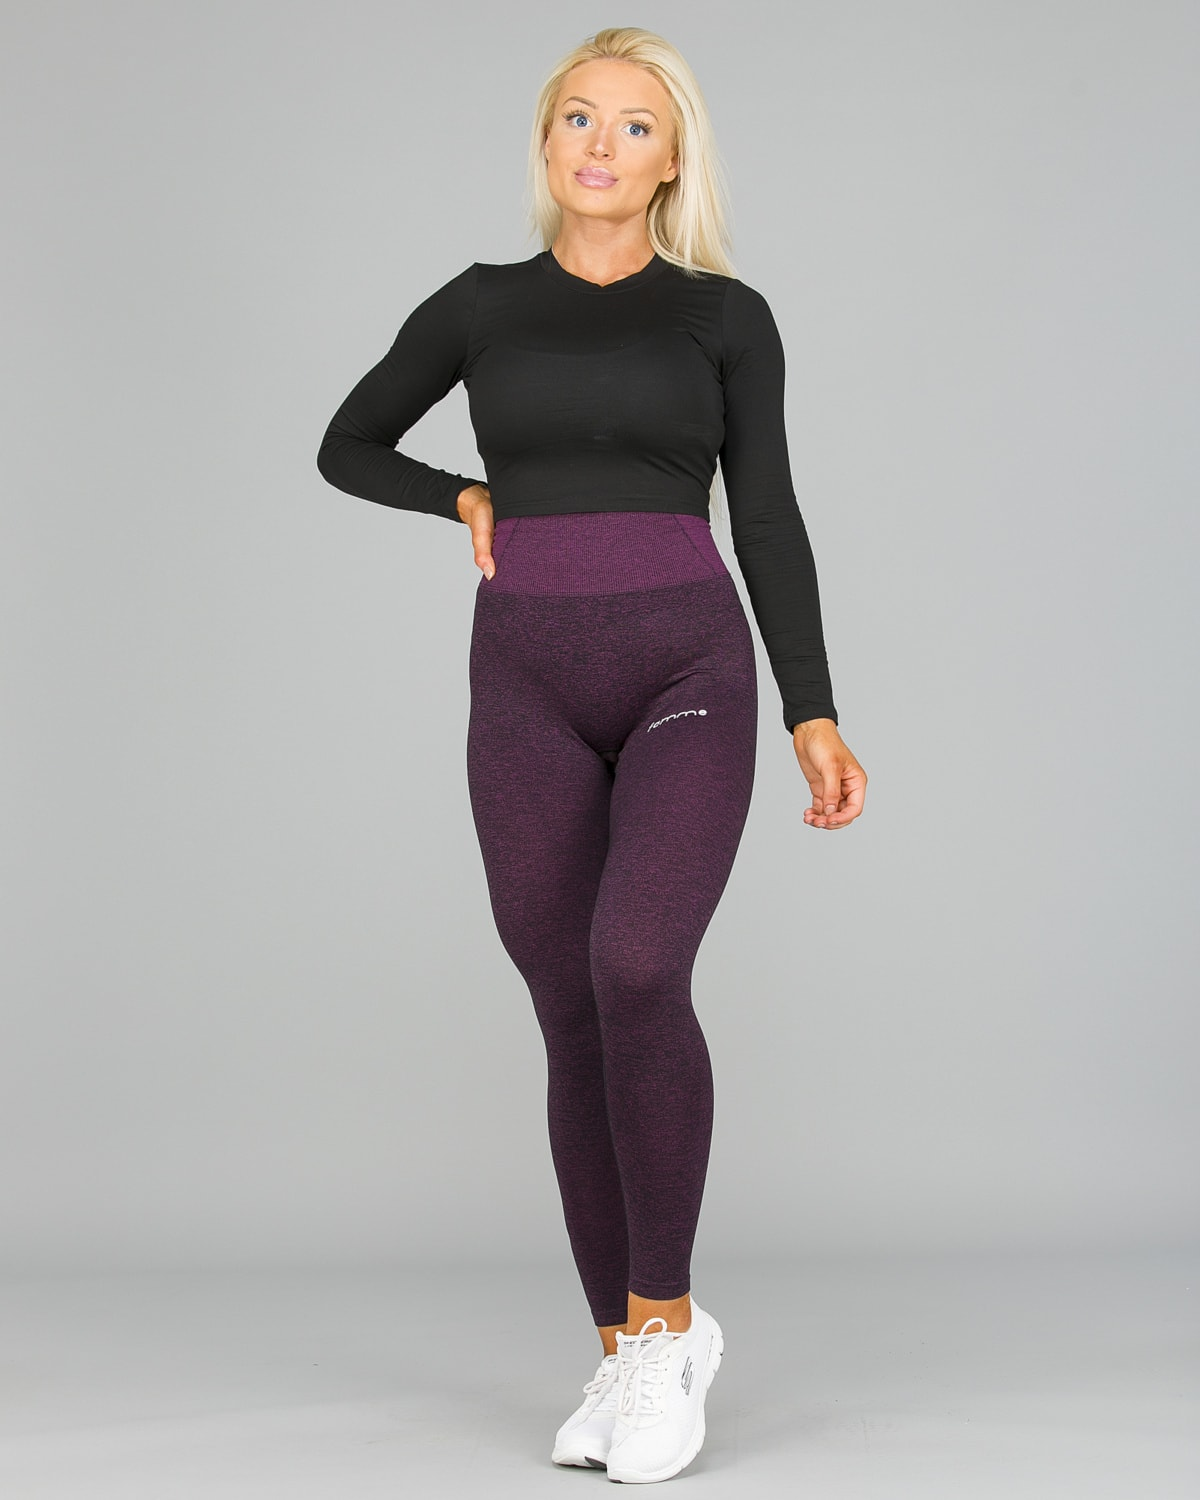 FAMME Lavender Seamless Essential Tights11